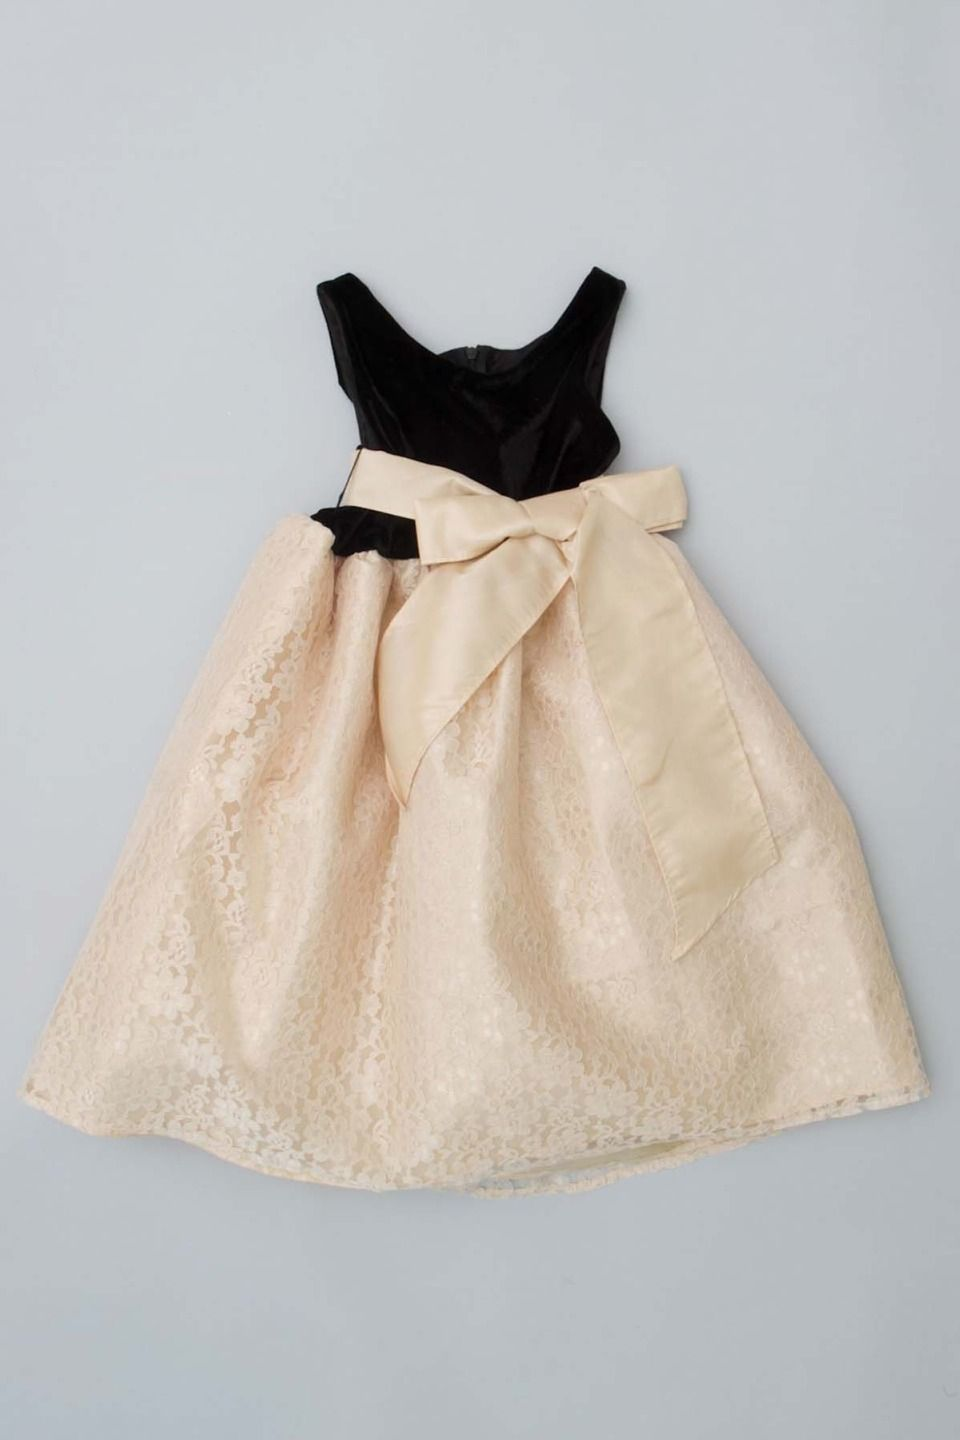 C'est Chouette Couture - Infant/Toddler/Girls Lace Bow Dress in Black and Gold